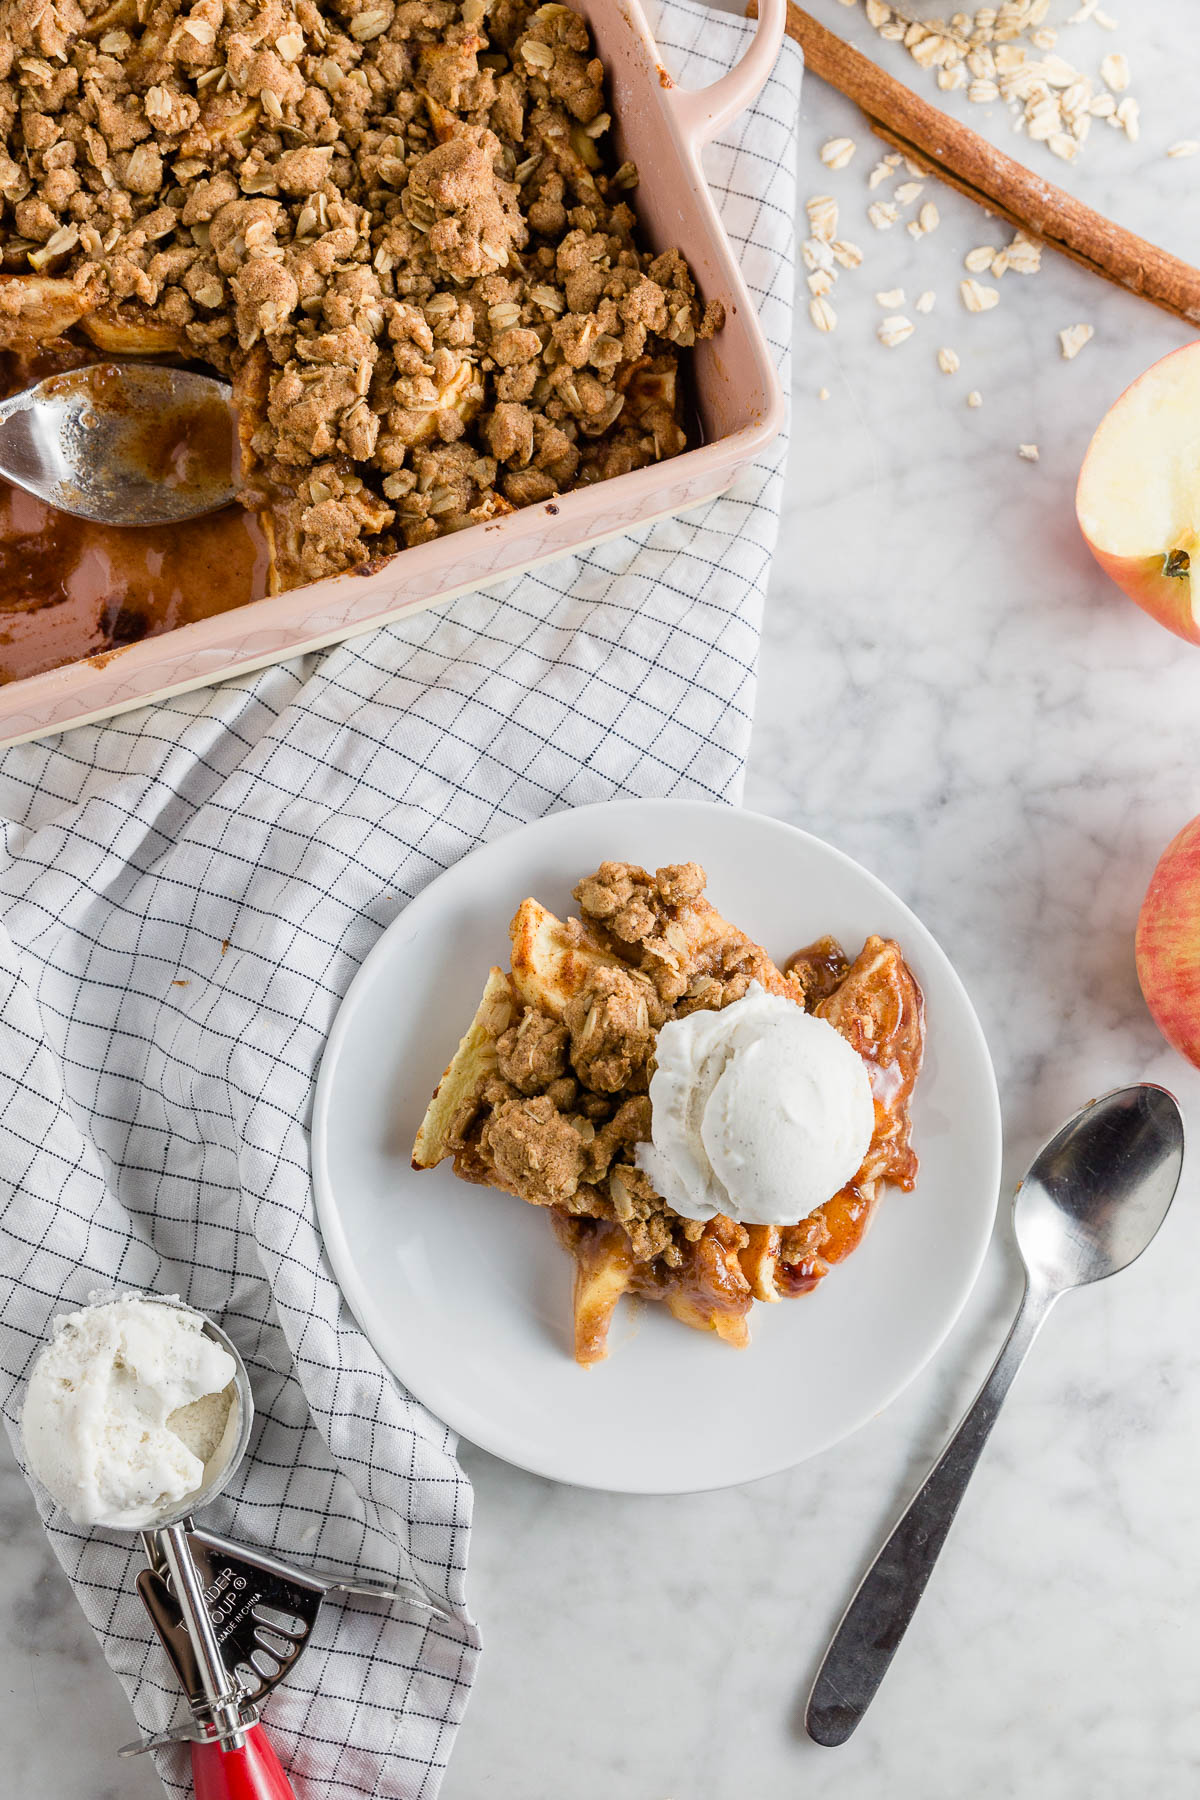 A plate with gluten-free apple crisp with a dairy-free and vegan option with a baking dish with sweet apple crisp.